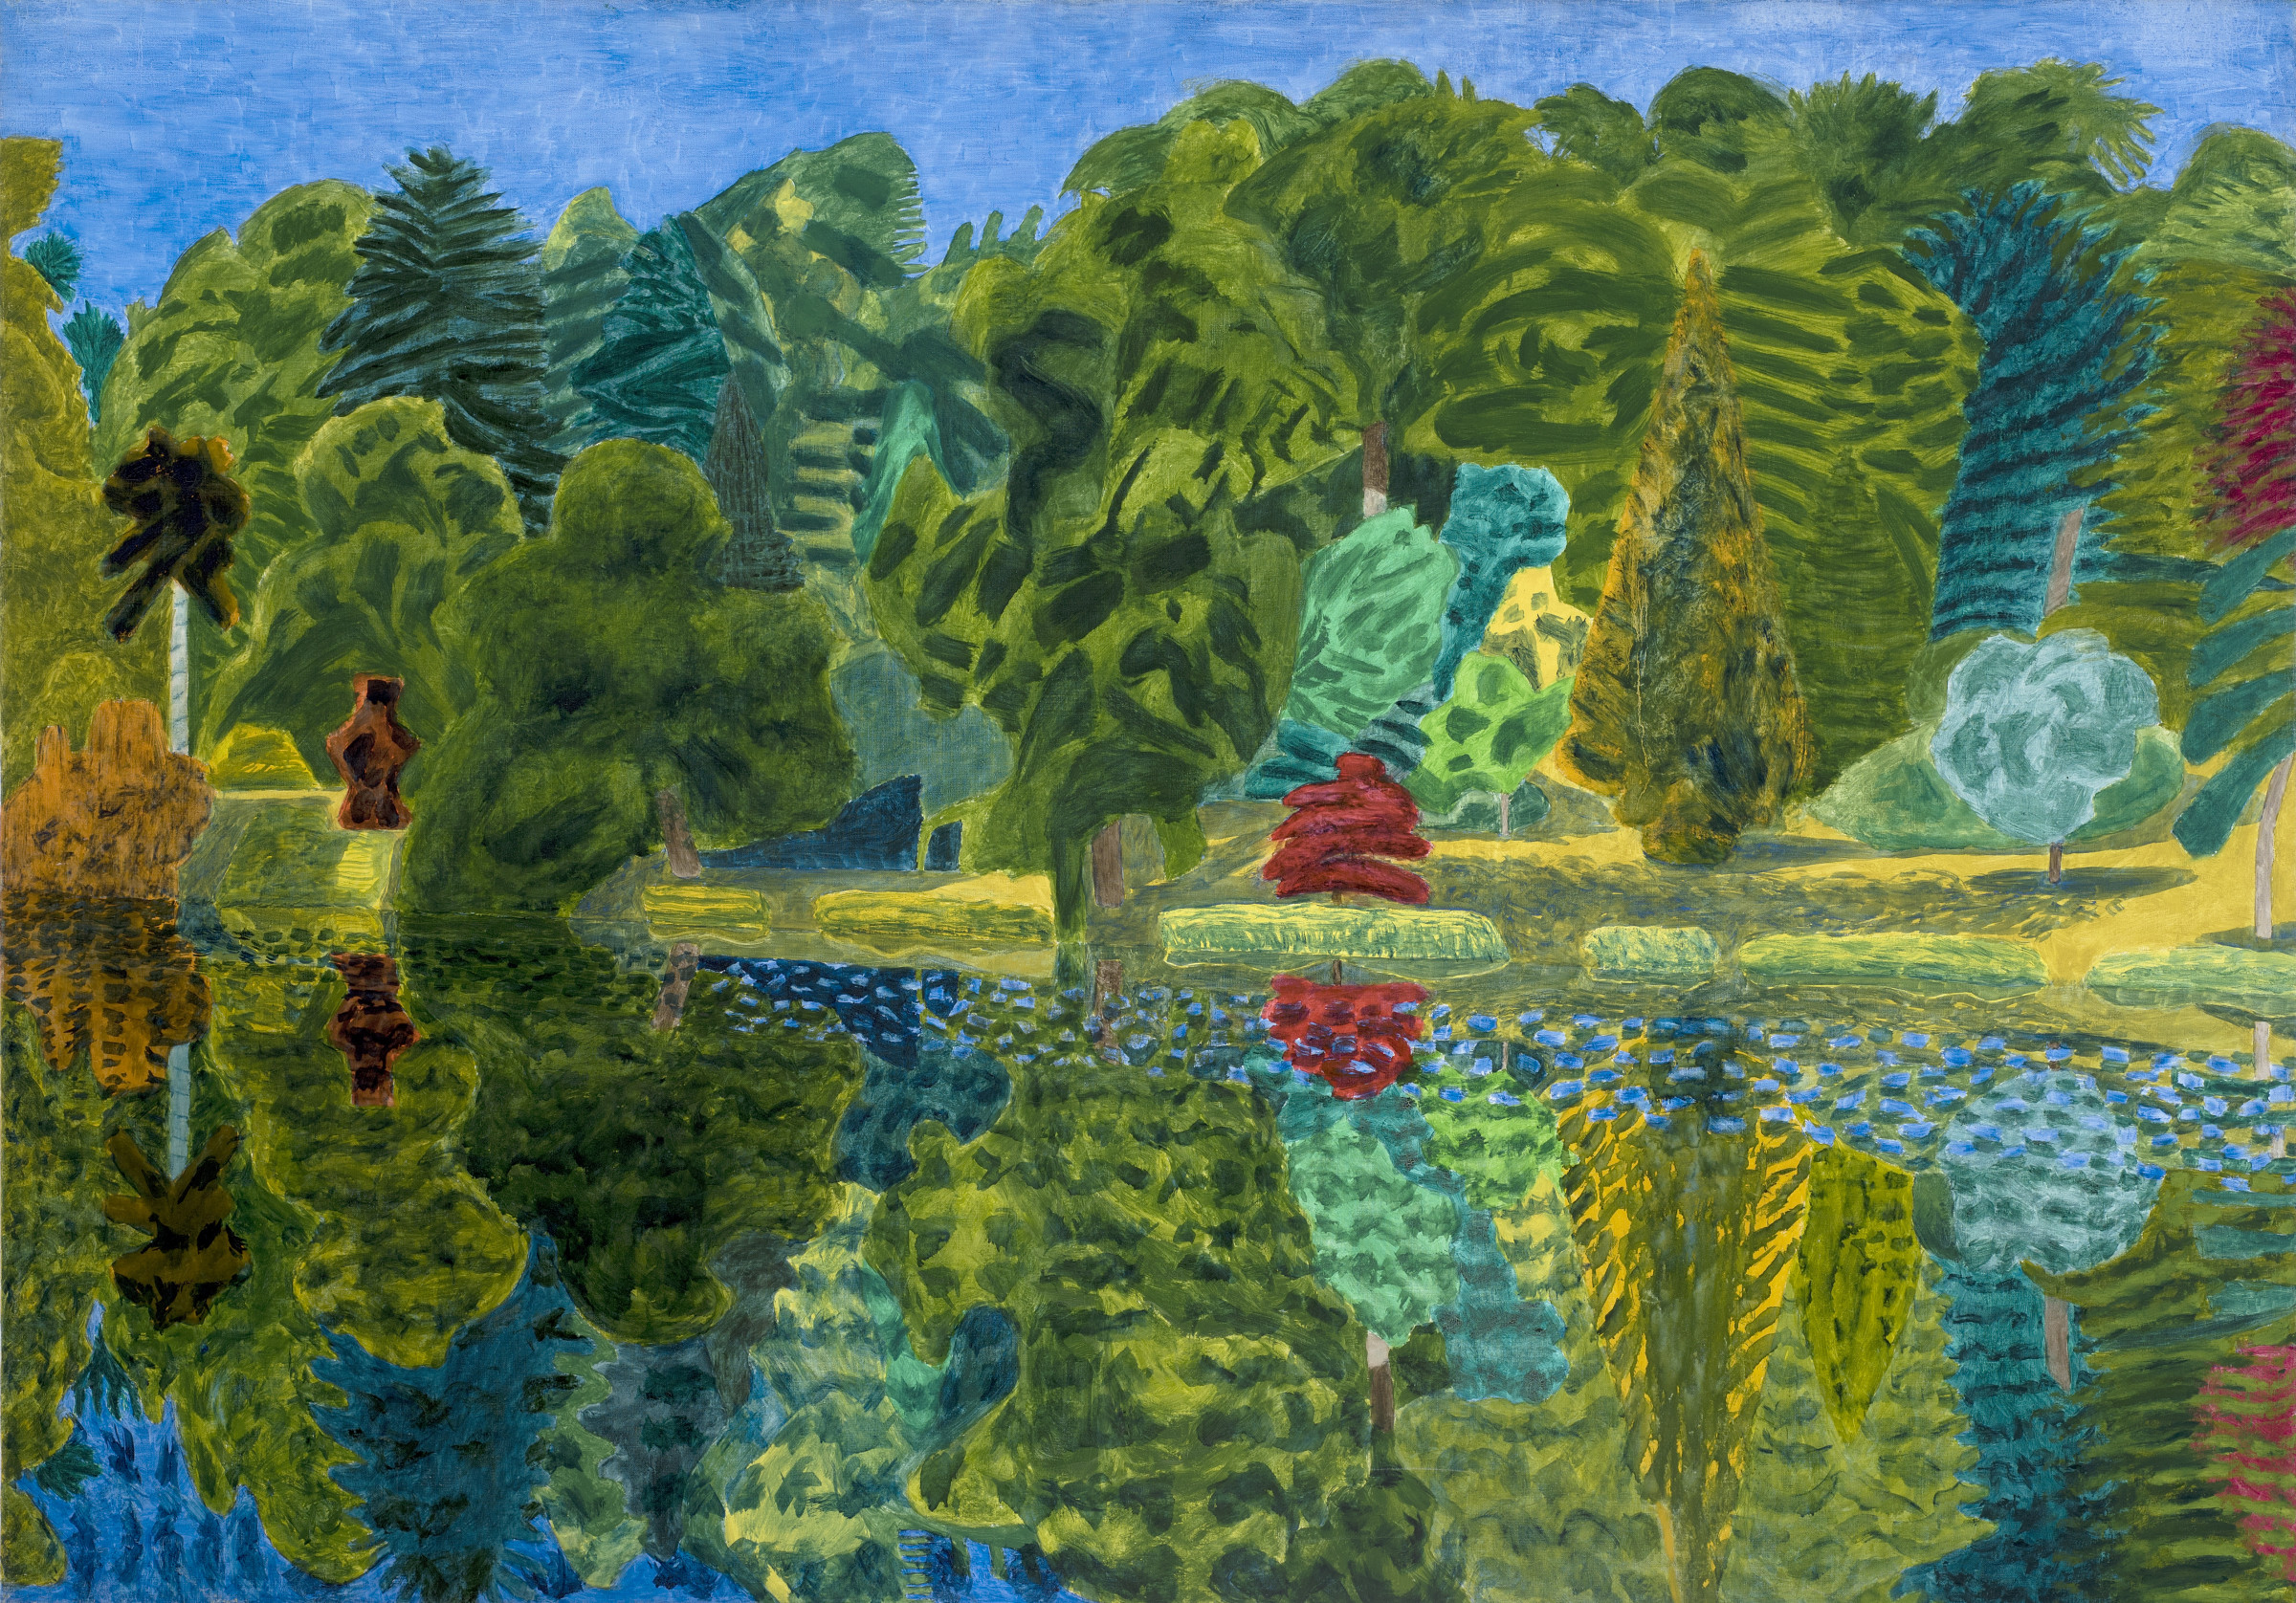 "<span class=""link fancybox-details-link""><a href=""/exhibitions/13/works/artworks472/"">View Detail Page</a></span><div class=""artist""><strong>Adrian Berg</strong></div><div class=""title""><em>Stourhead, 29th June</em>, 1993</div><div class=""signed_and_dated"">signed and dated on reverse</div><div class=""medium"">oil on canvas</div><div class=""dimensions"">132 x 188cm</div>"